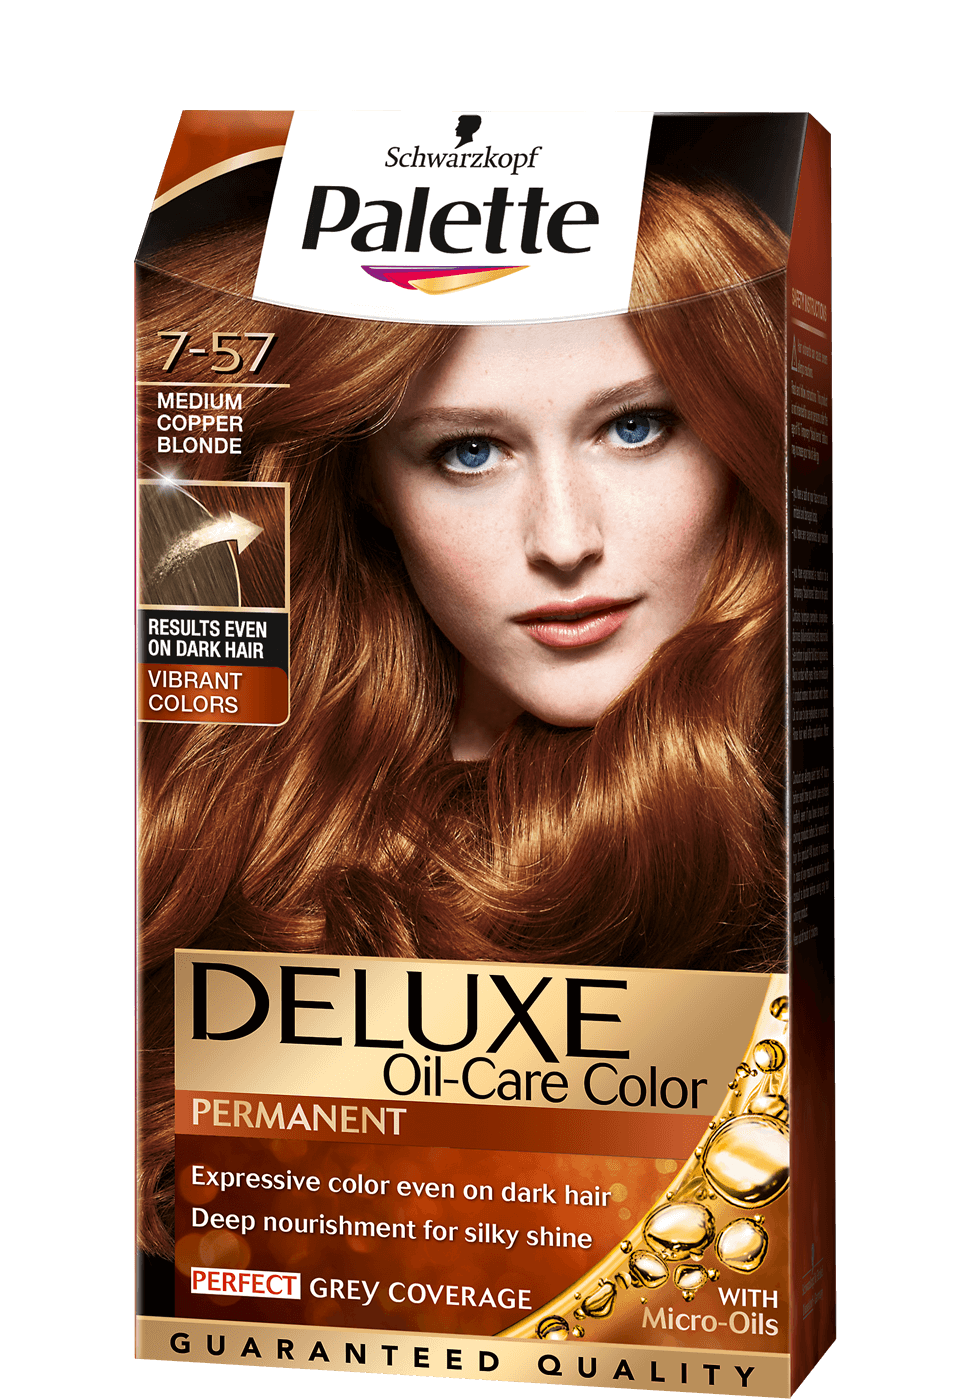 palette_com_deluxe_vibrantcolors_7-57_medium_copper_blonde_970x1400